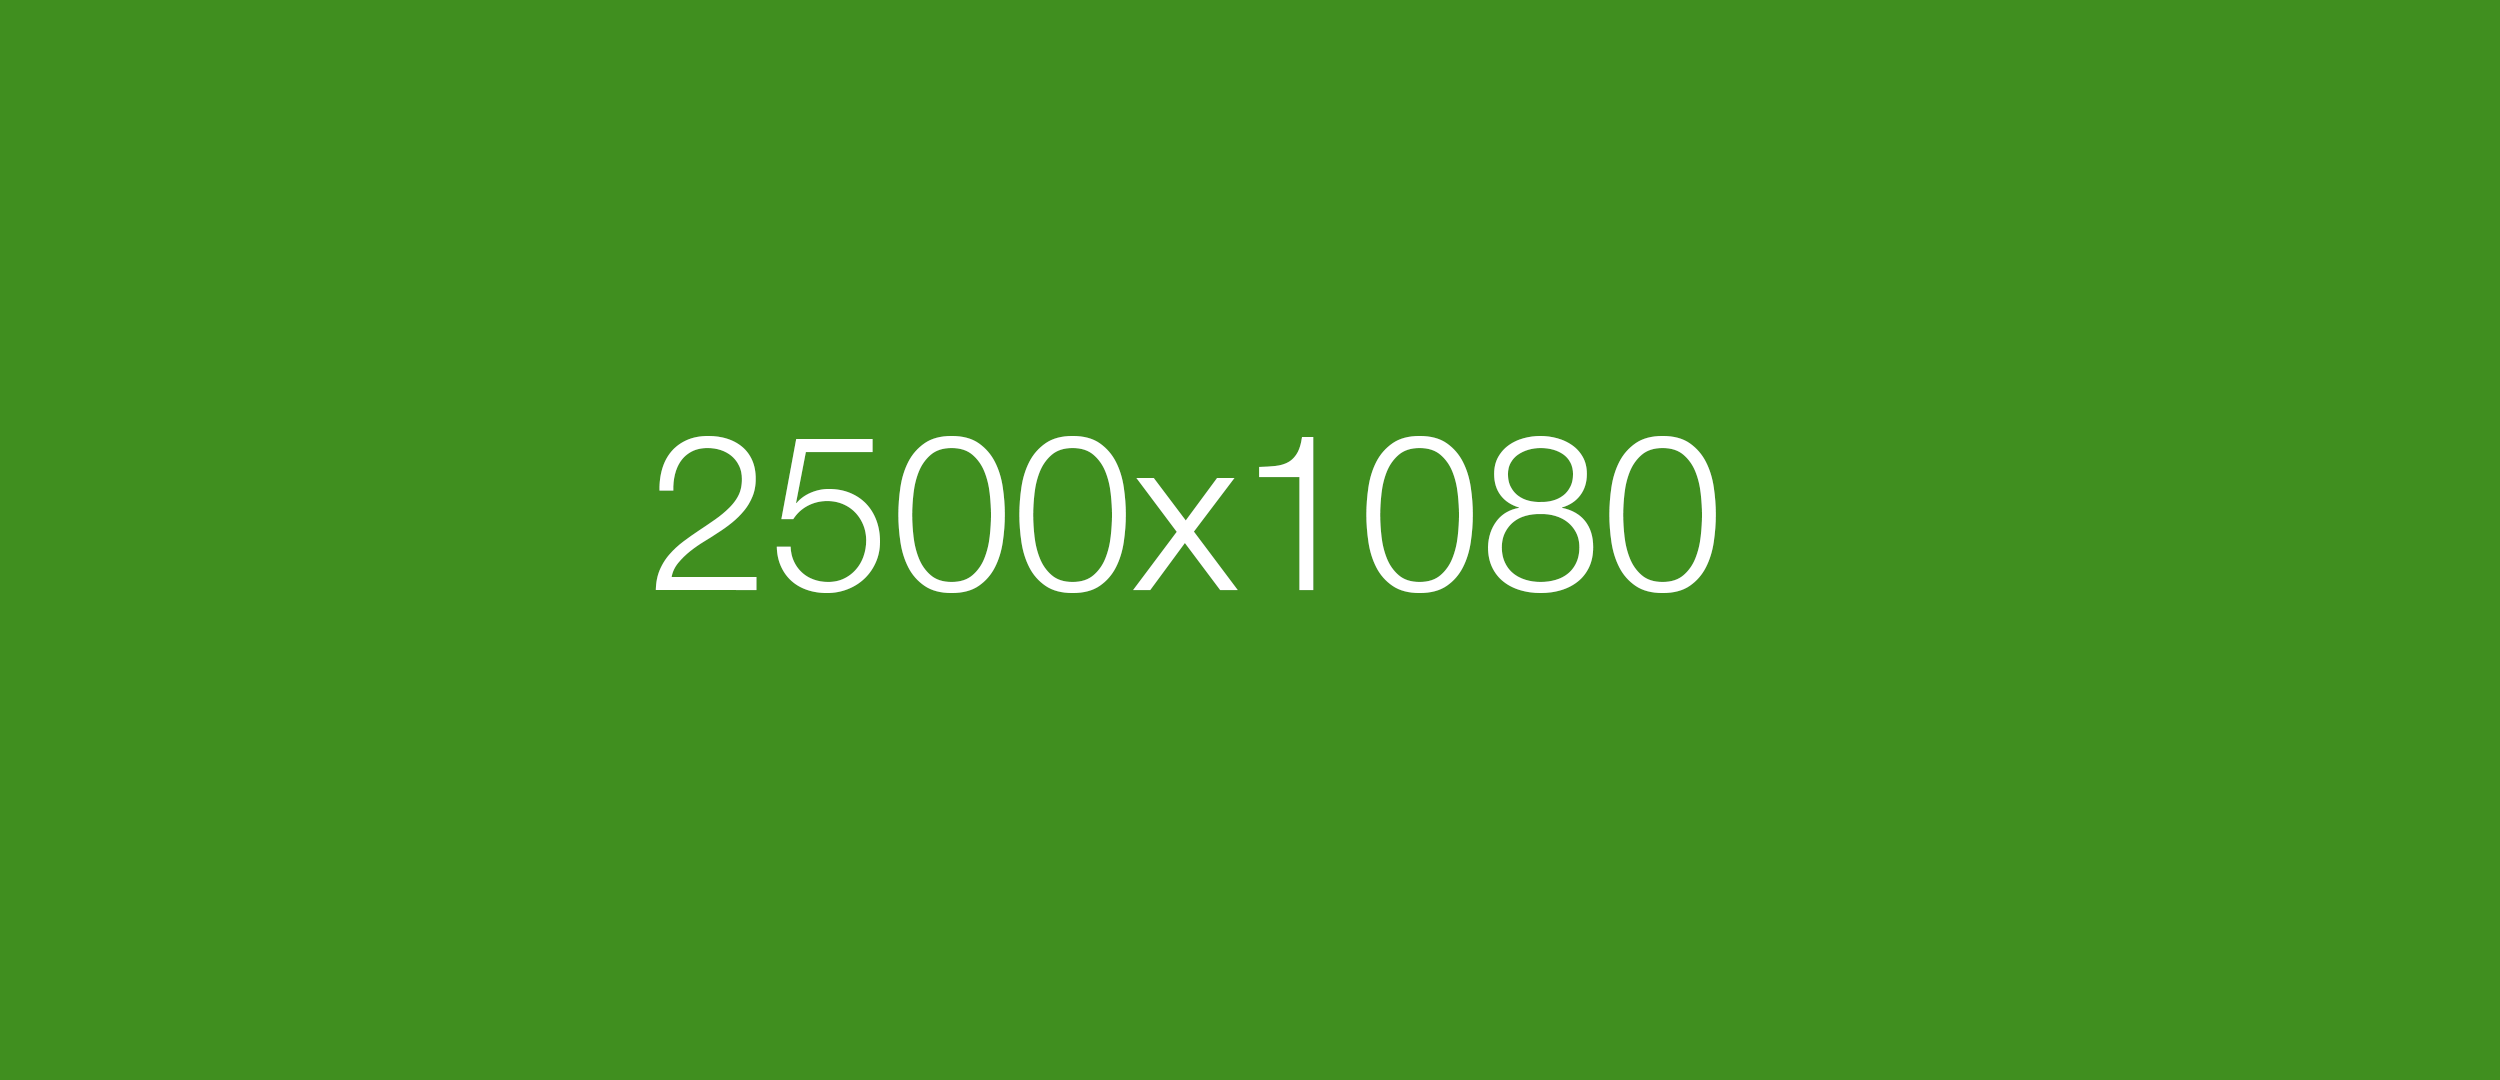 2500x1080.png